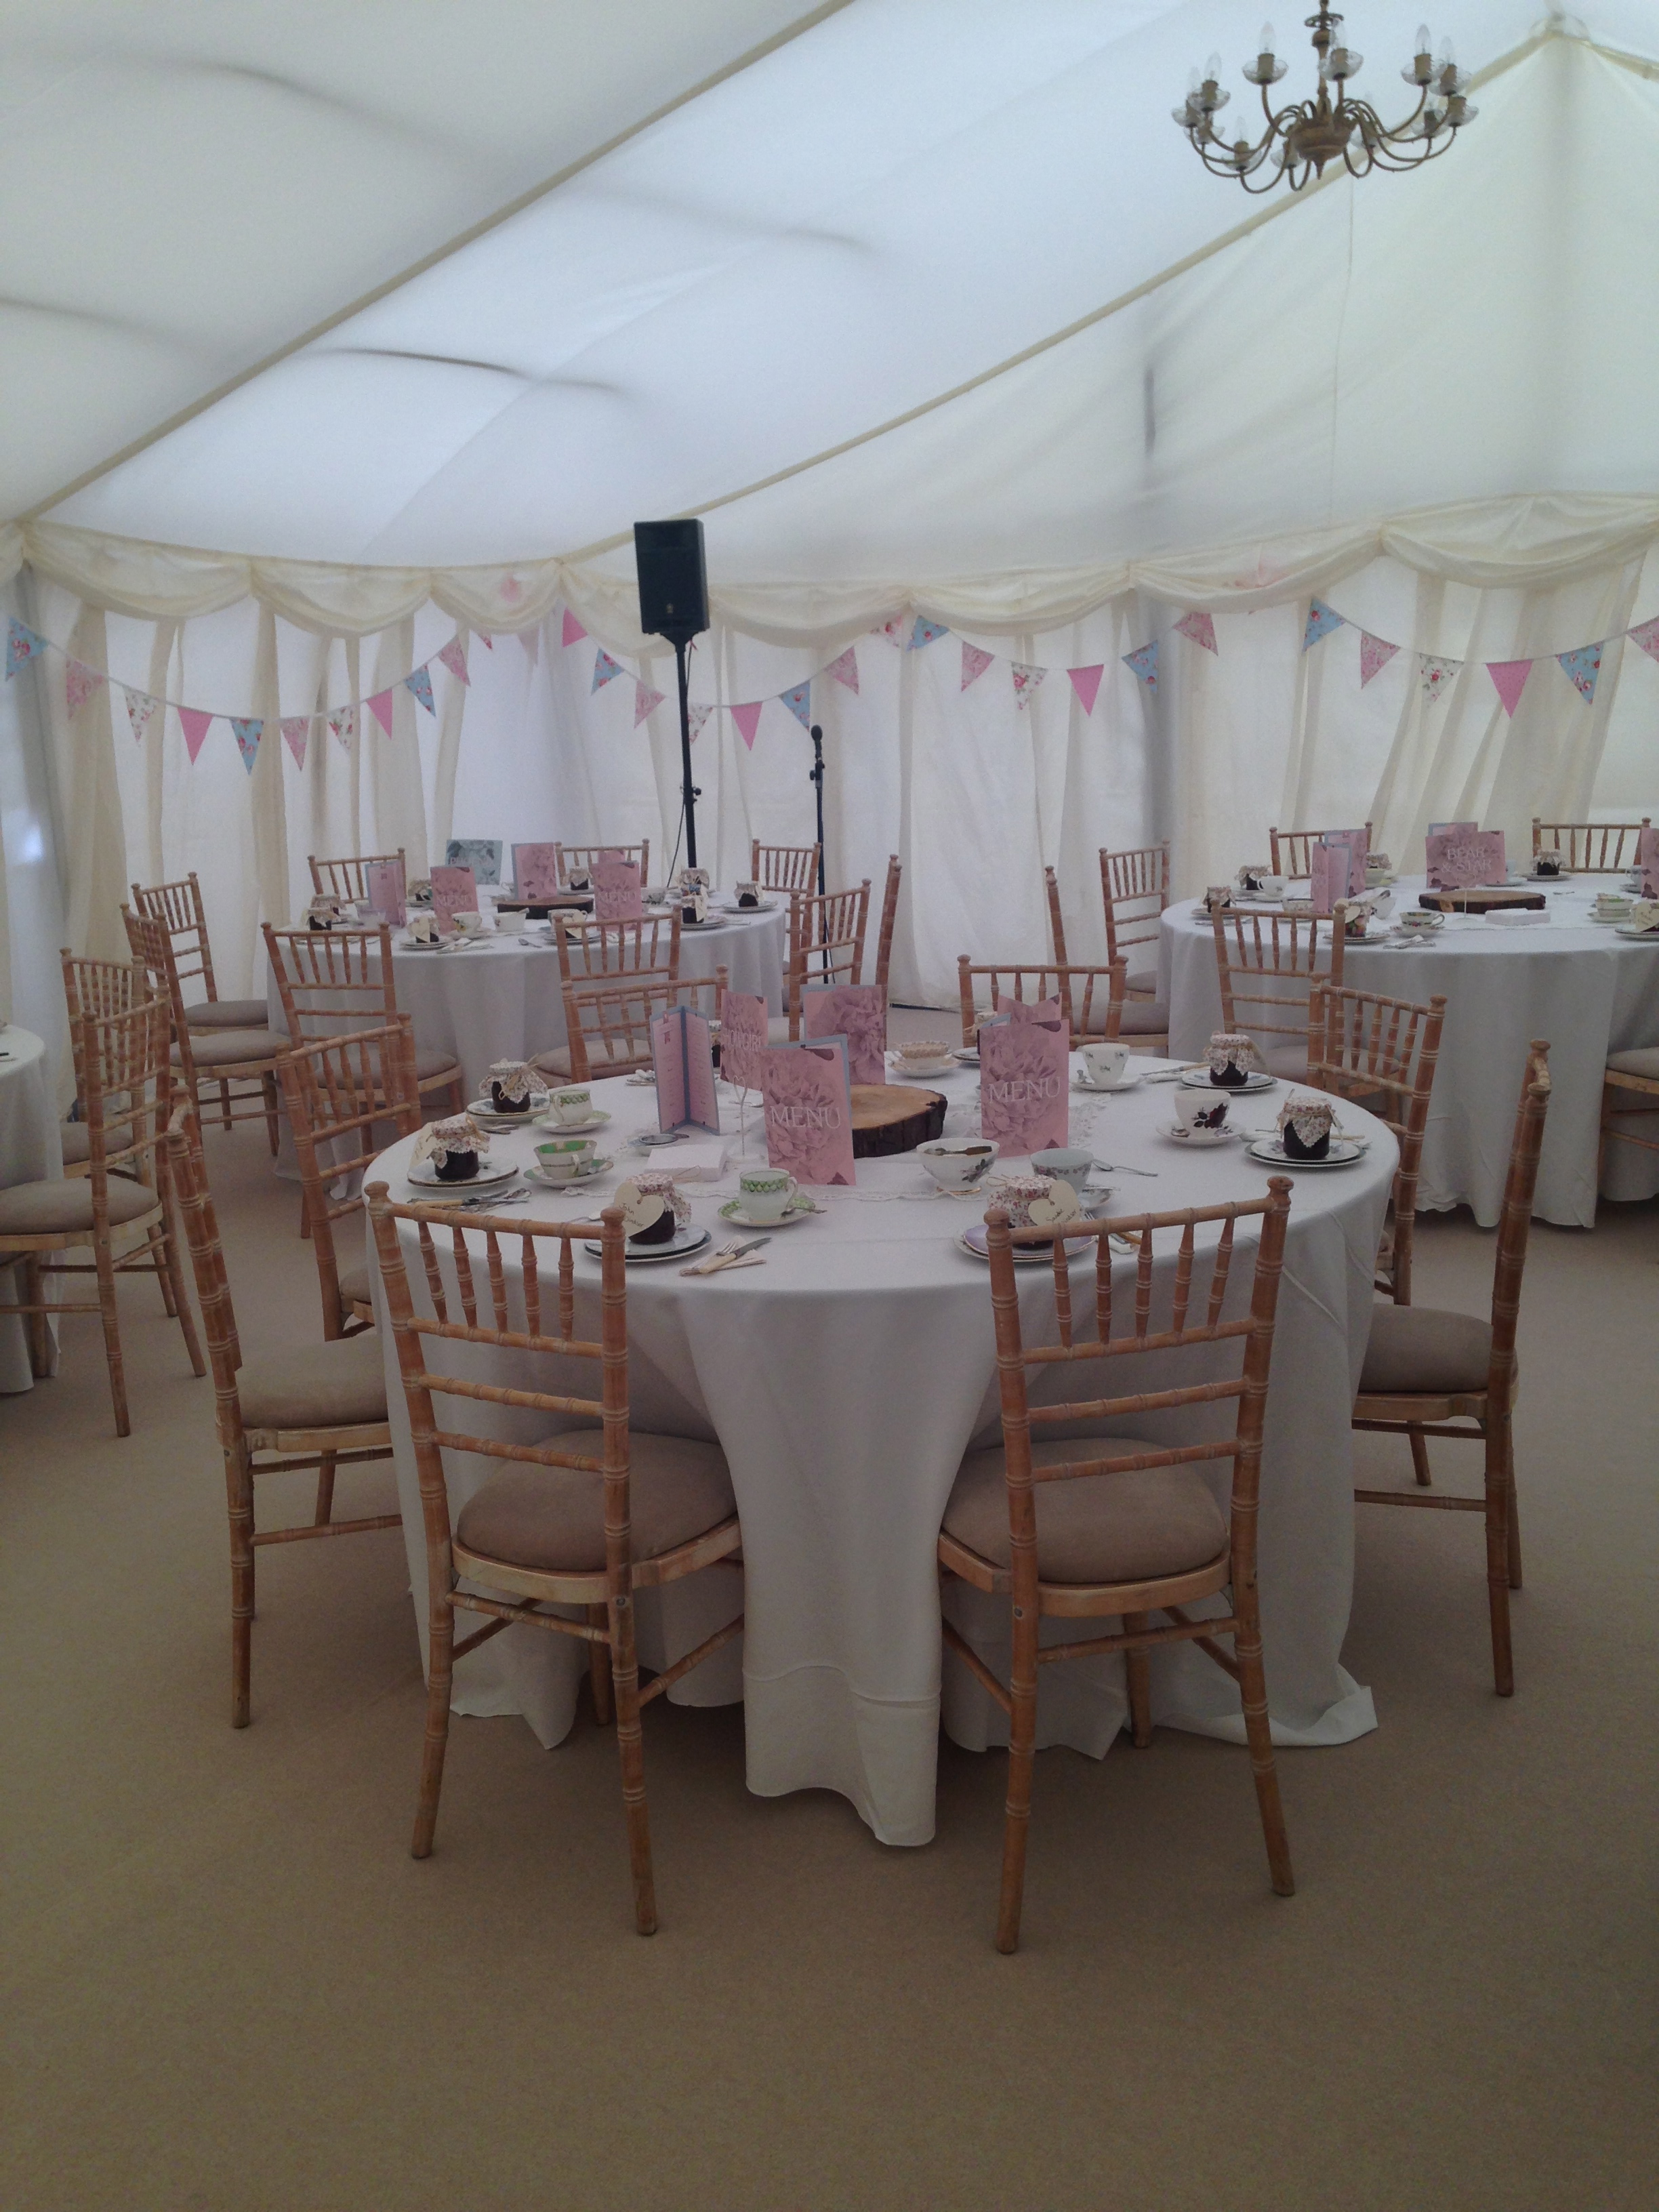 The stunning marquee at The Barn at Chilton